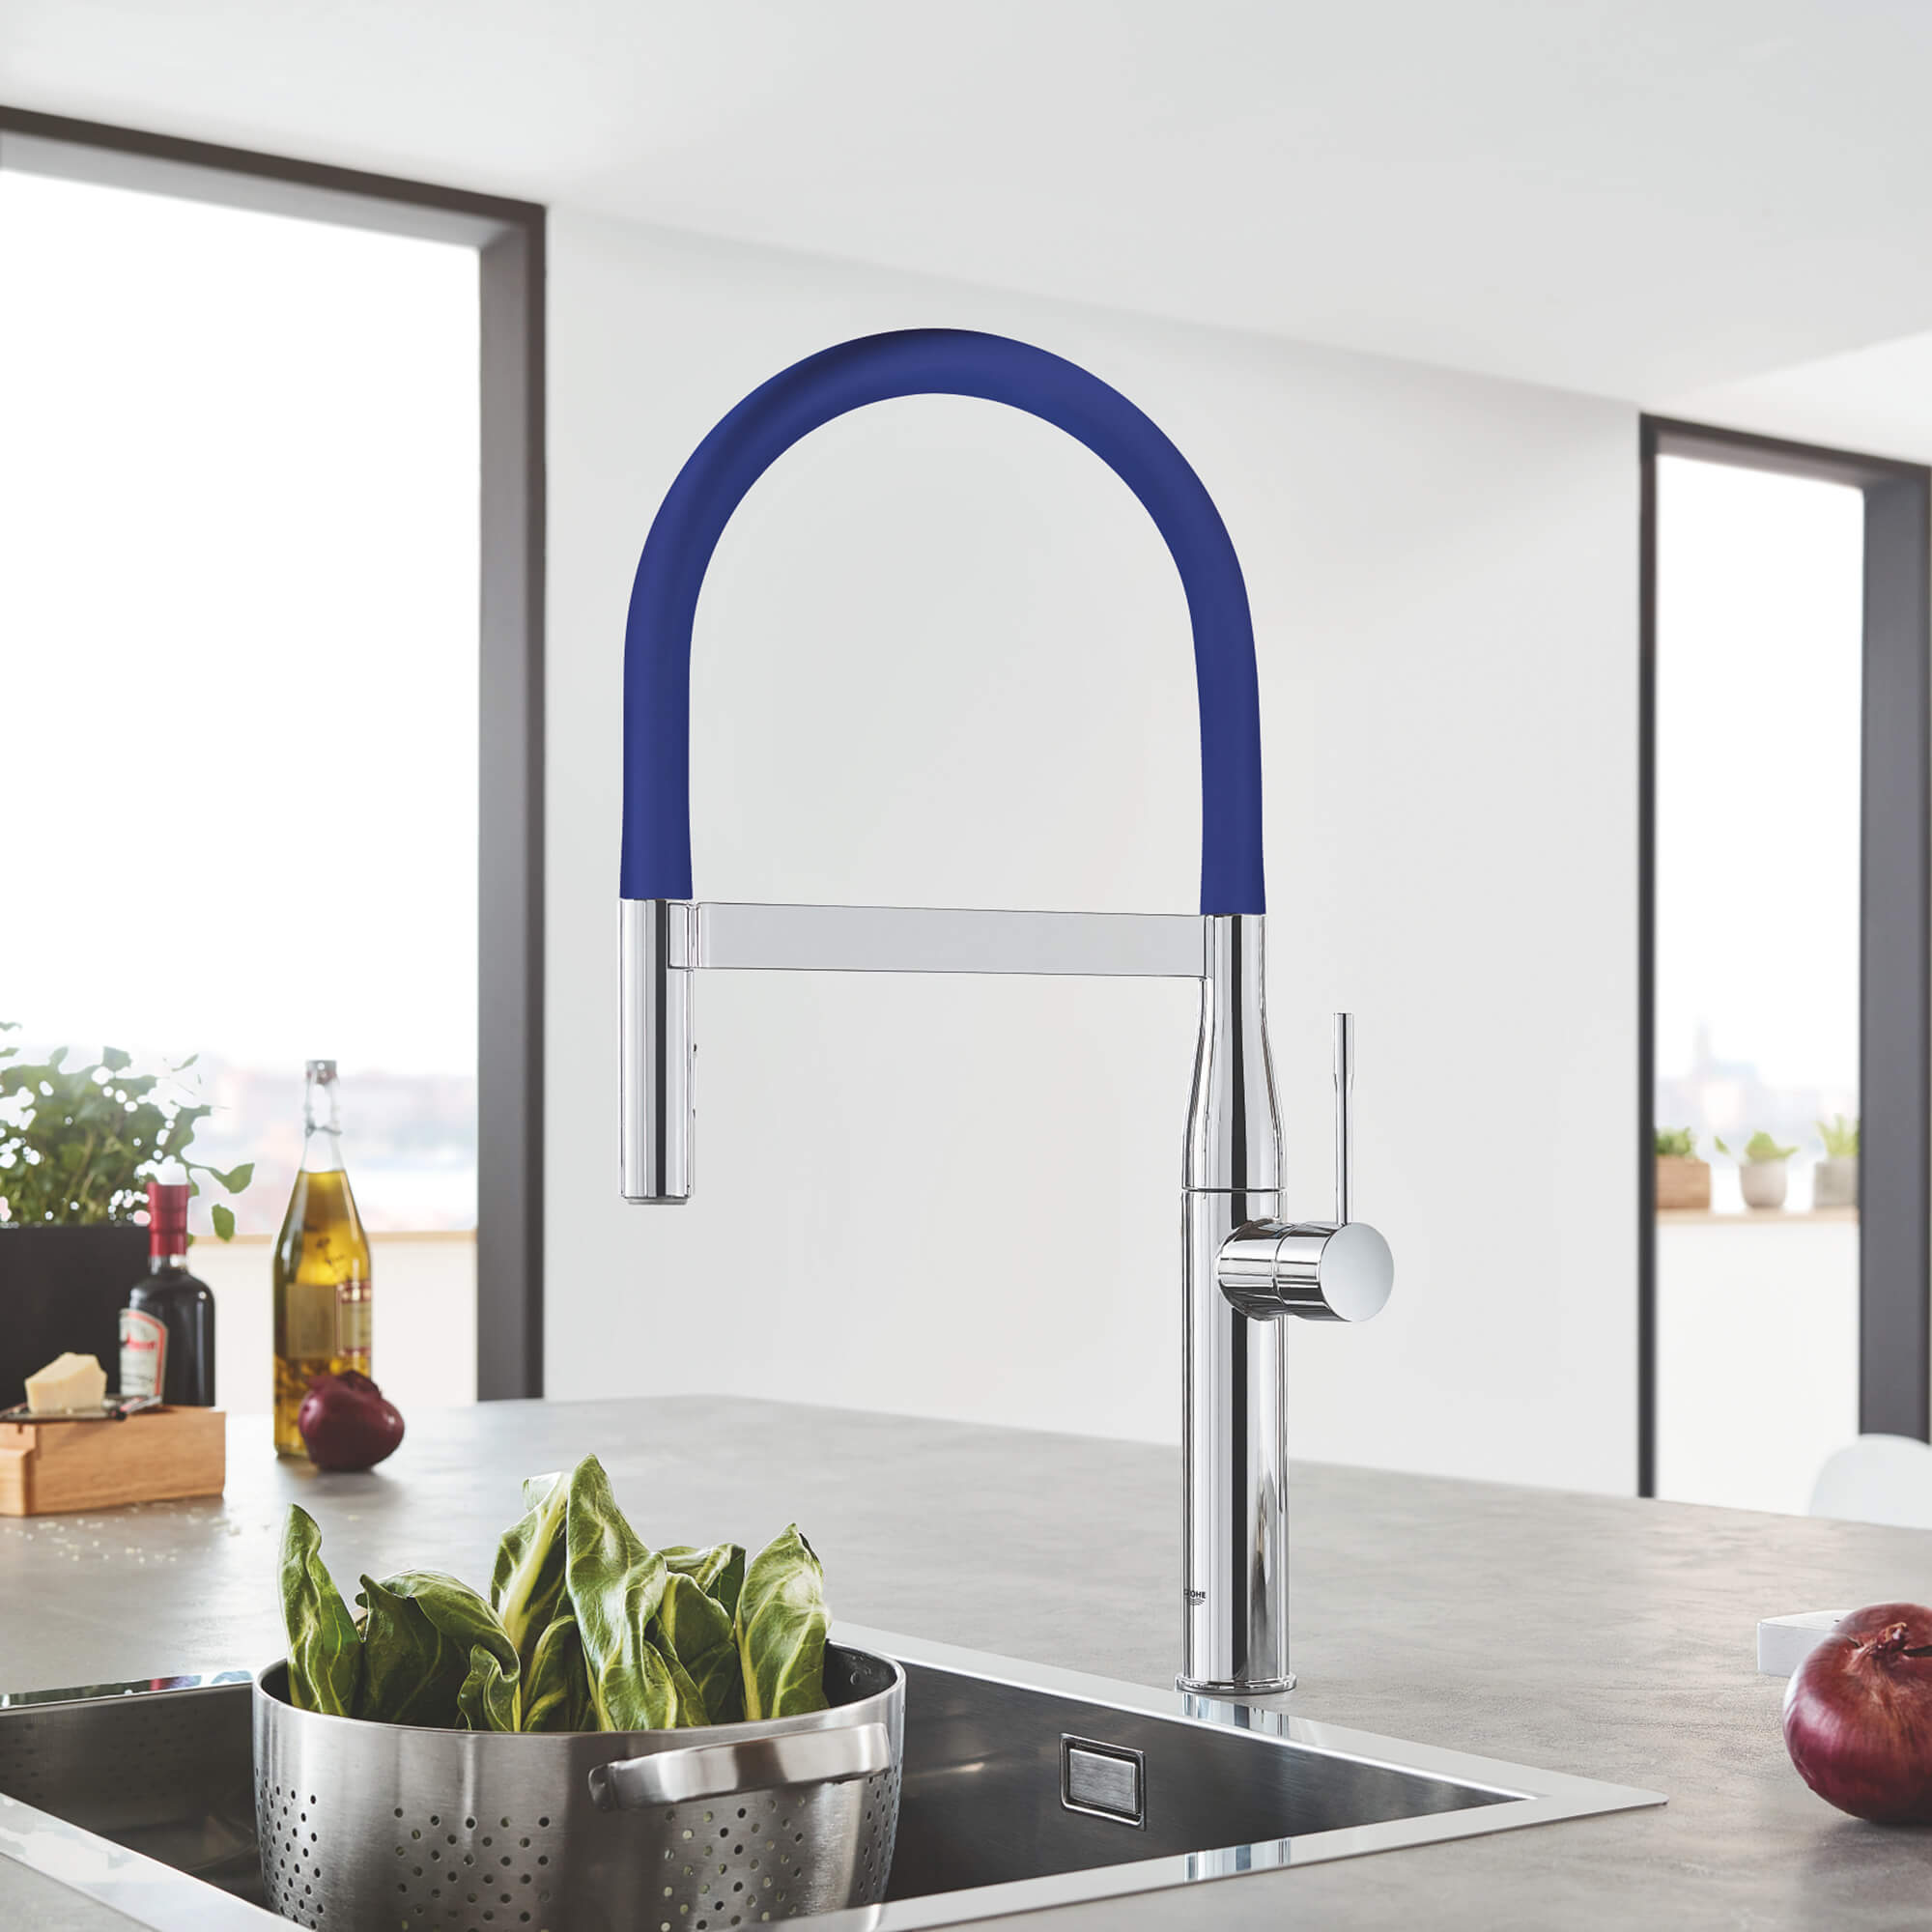 GROHE Essence Kitchen Faucet with vegetables in bowl in sink